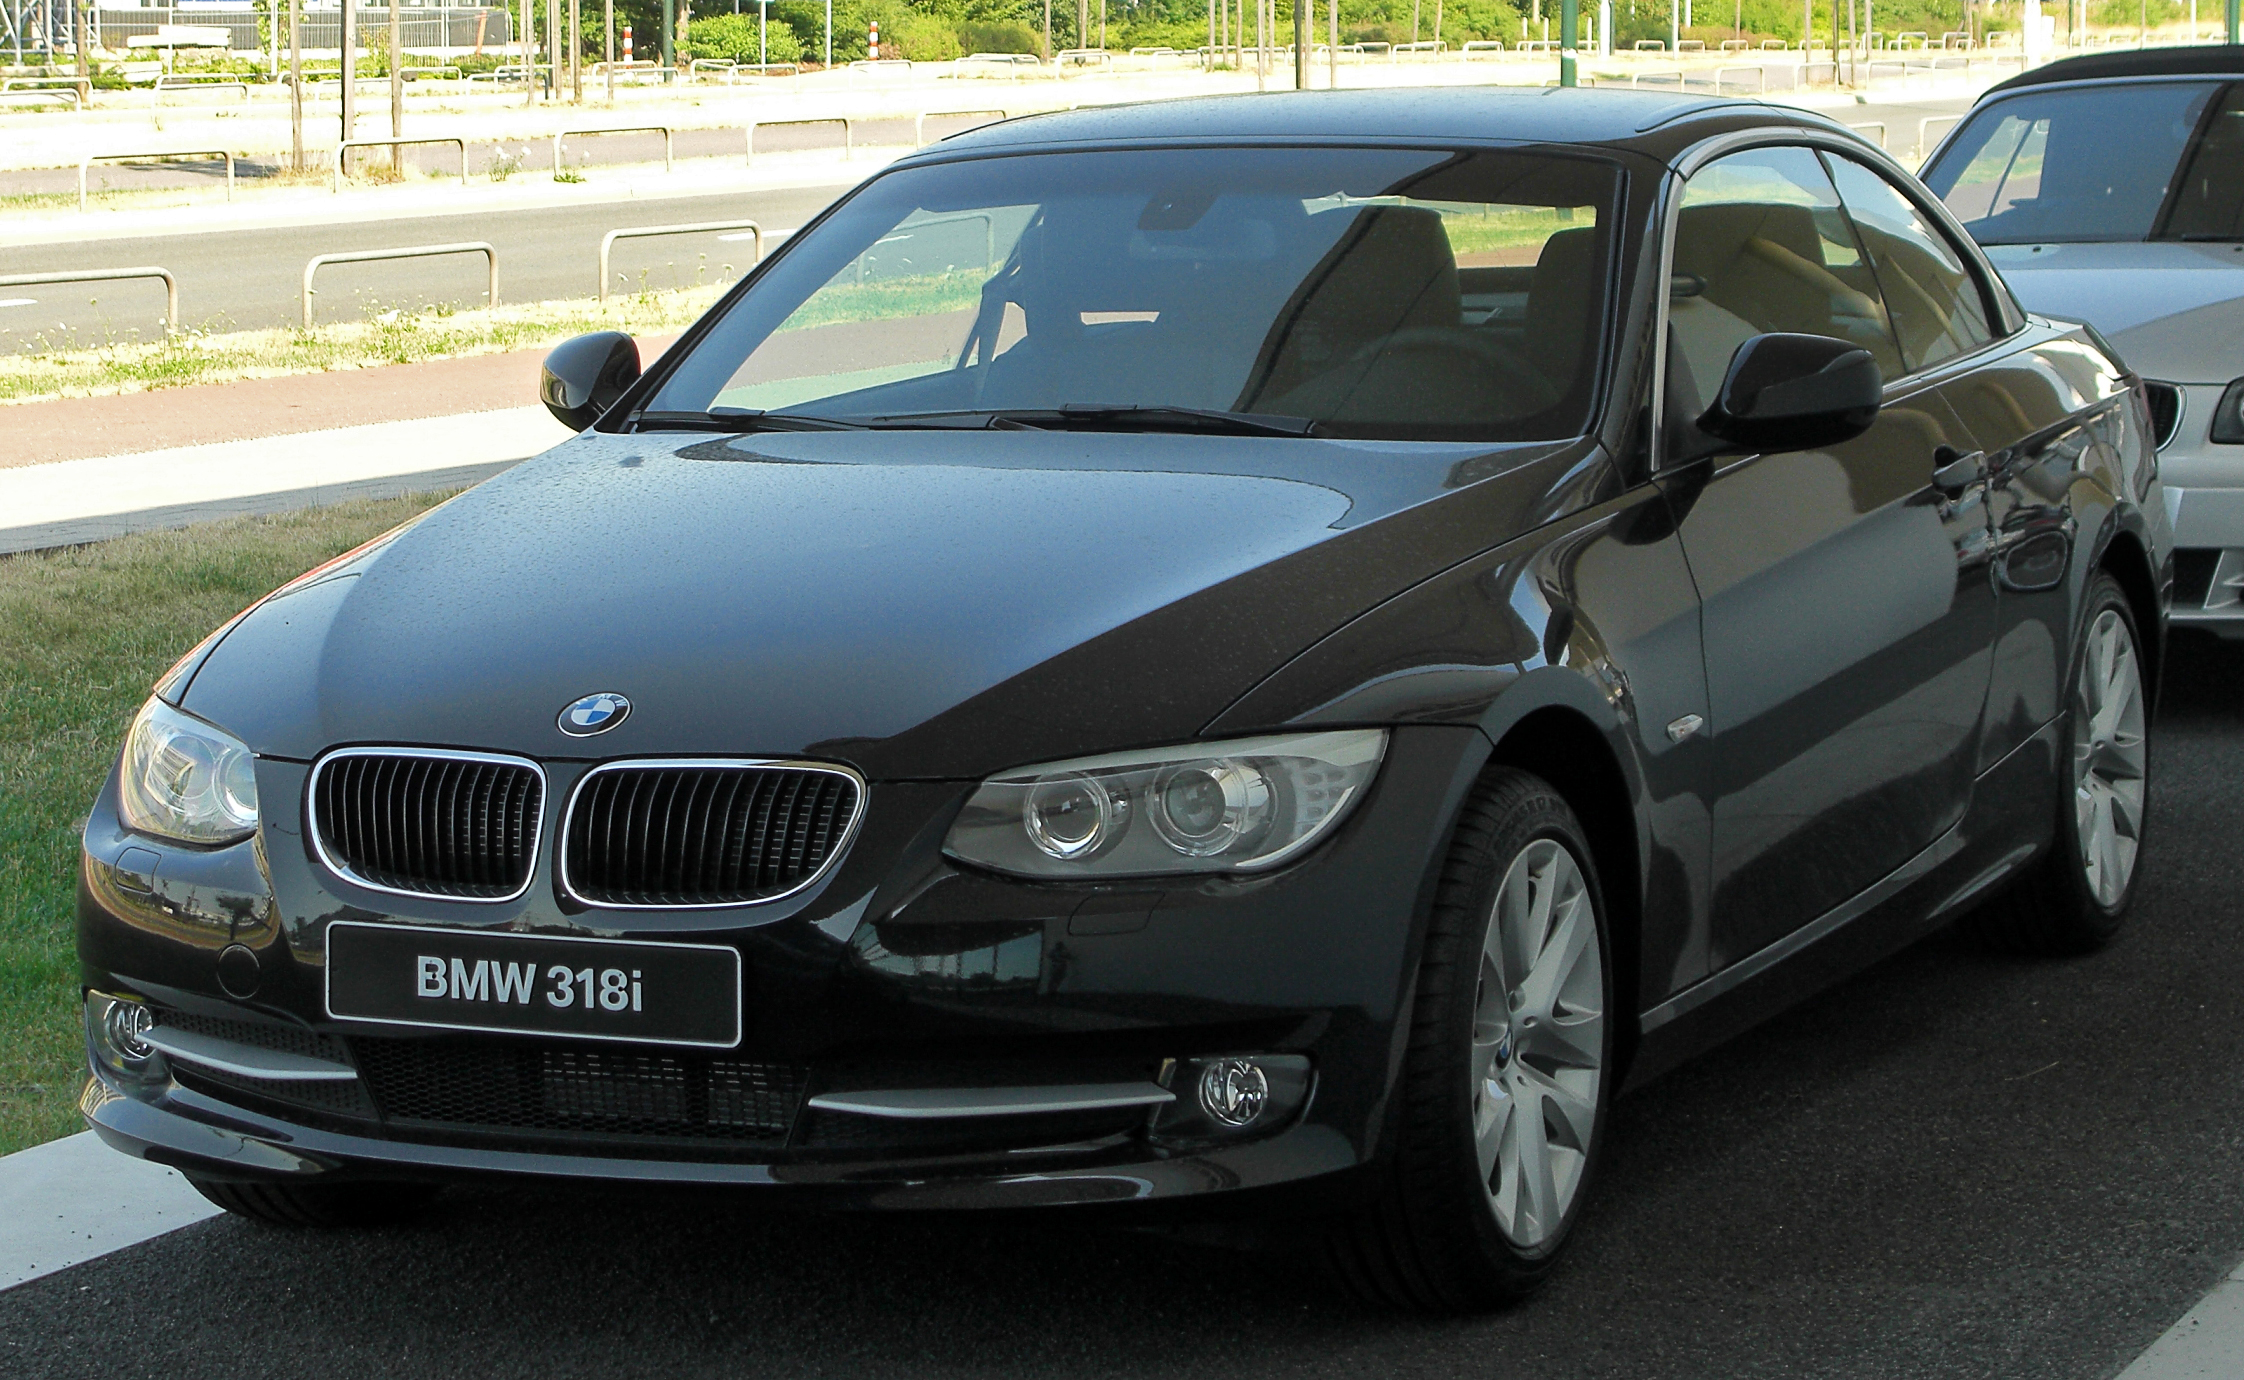 Bmw E90 Wiki >> File:BMW 318i Cabriolet (E93) Facelift front 20100718.jpg - Wikimedia Commons